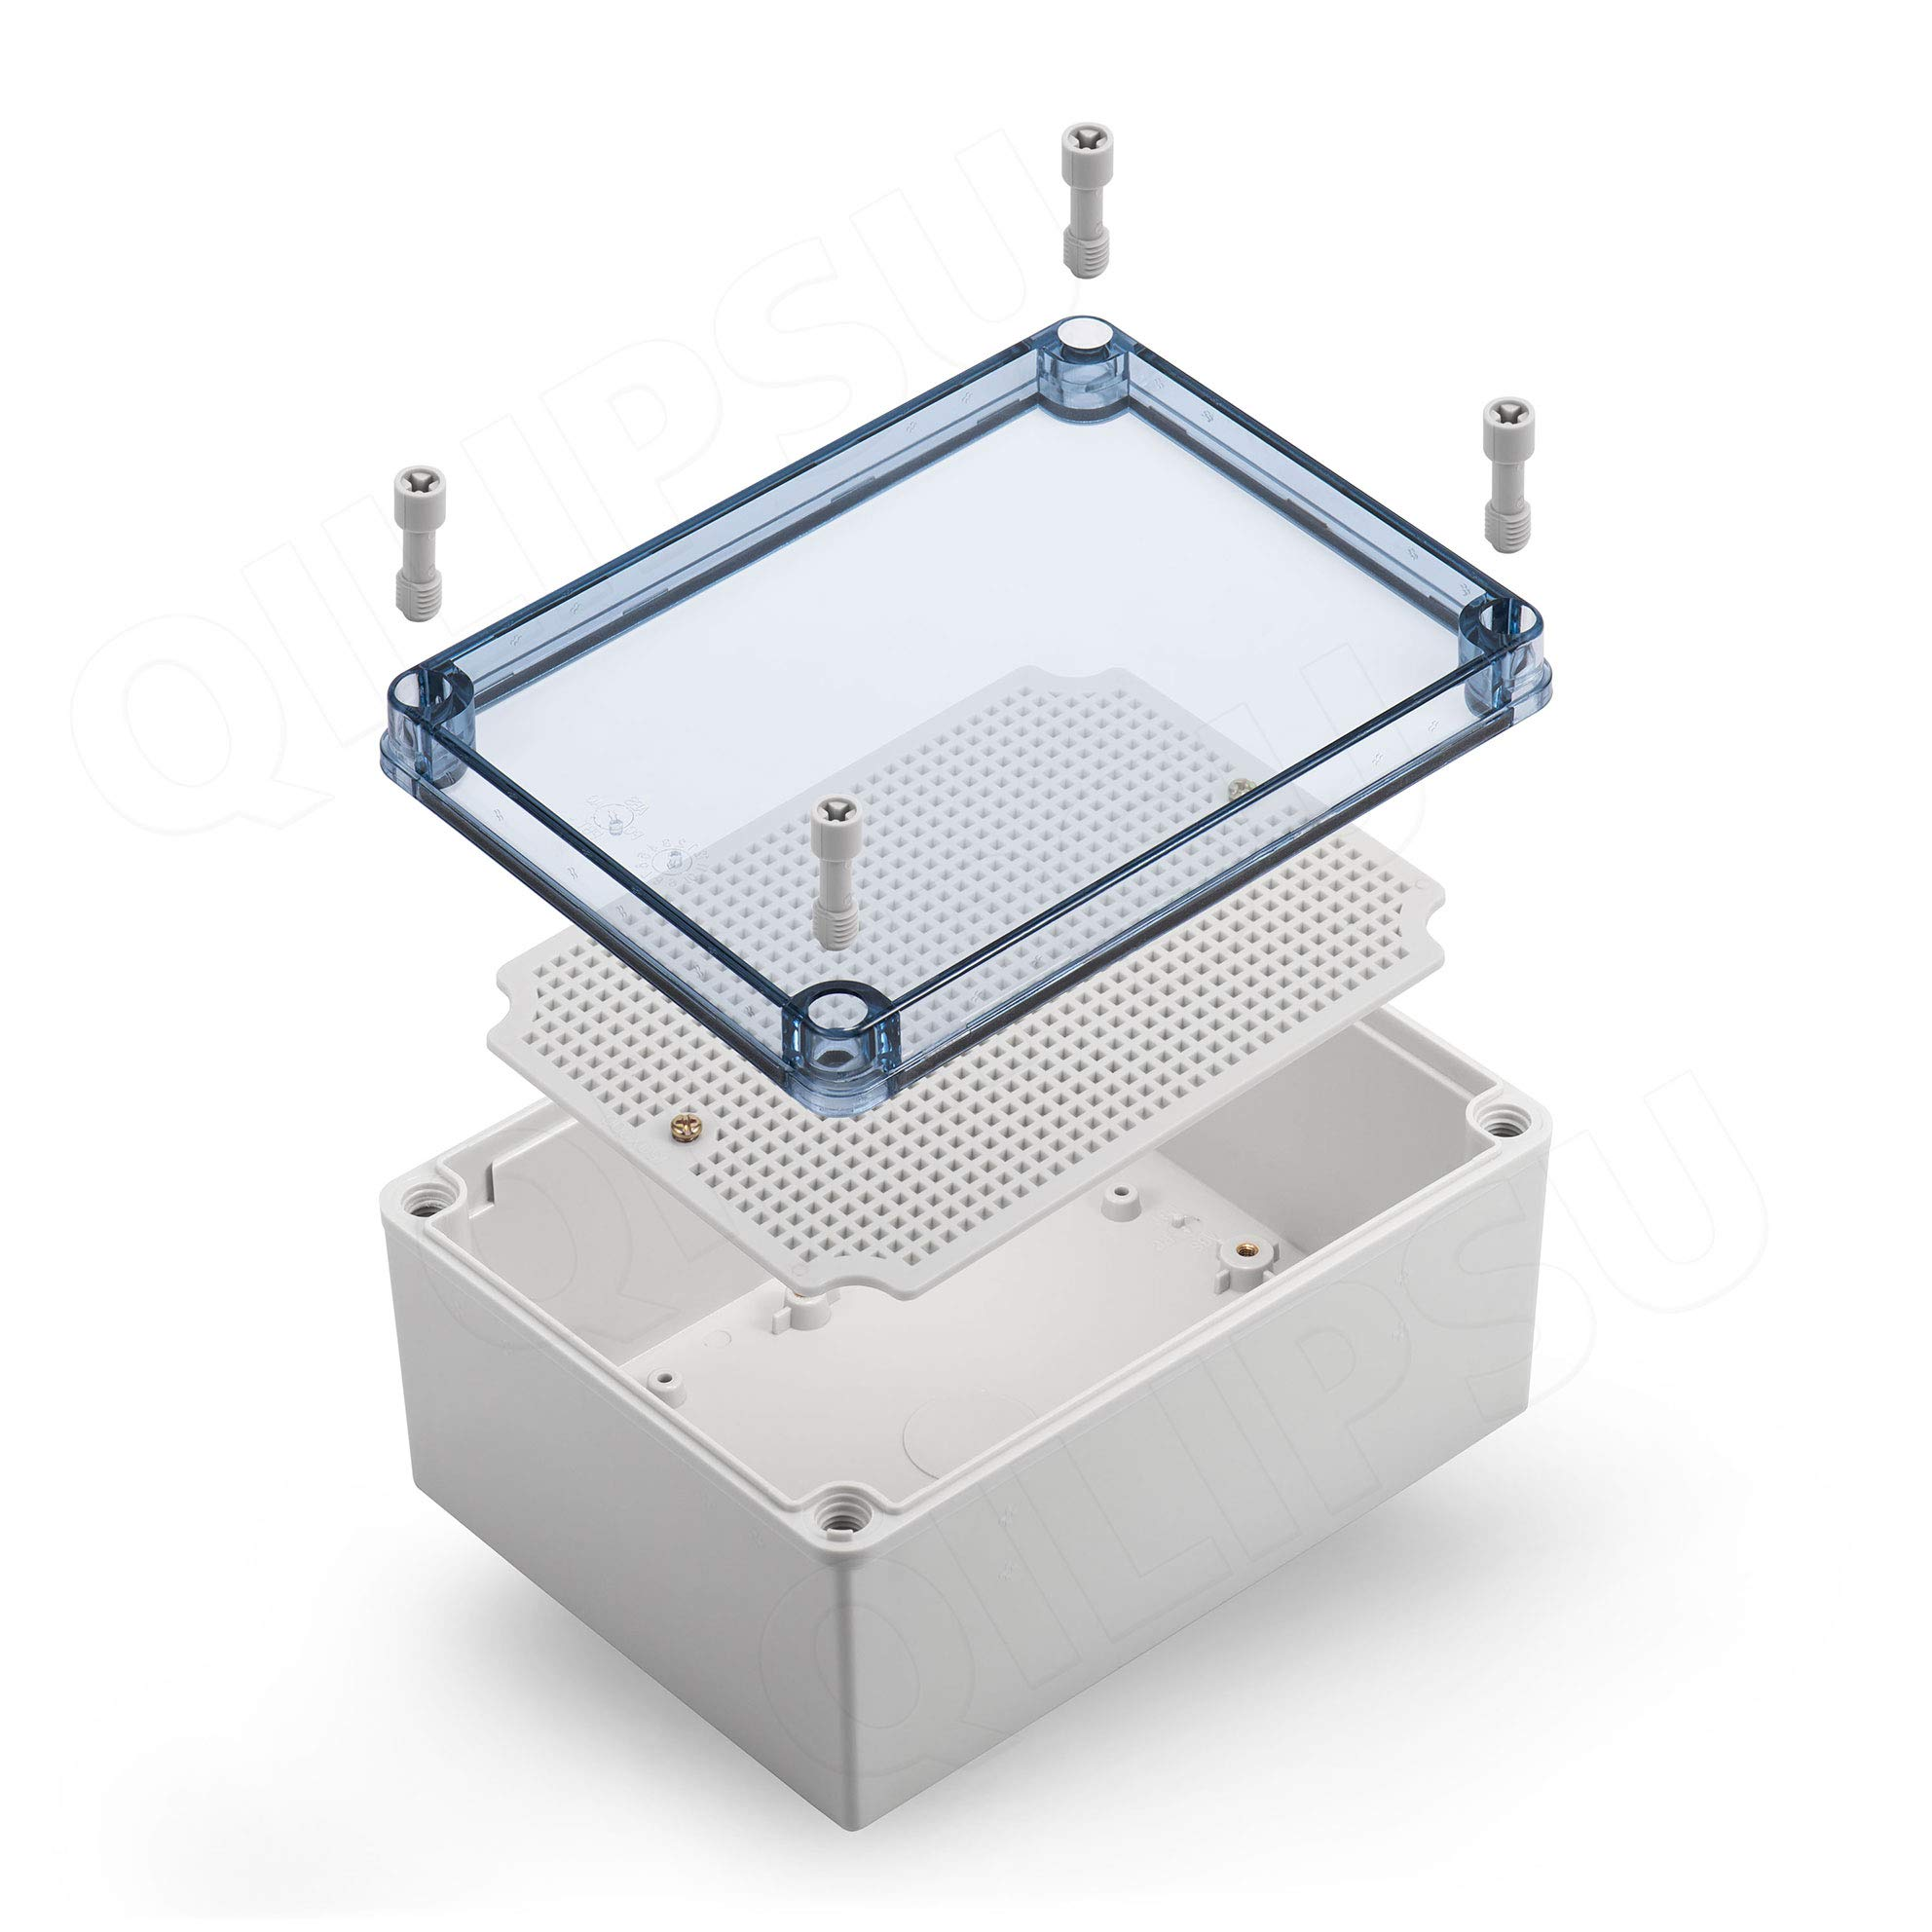 "QILIPSU Junction Box With Mounting Plate 200x150x100mm, Clear Cover Plastic DIY Electrical Project Case IP67 Waterproof Dustproof Enclosure Grey (7.9""x5.9""x3.9"")"